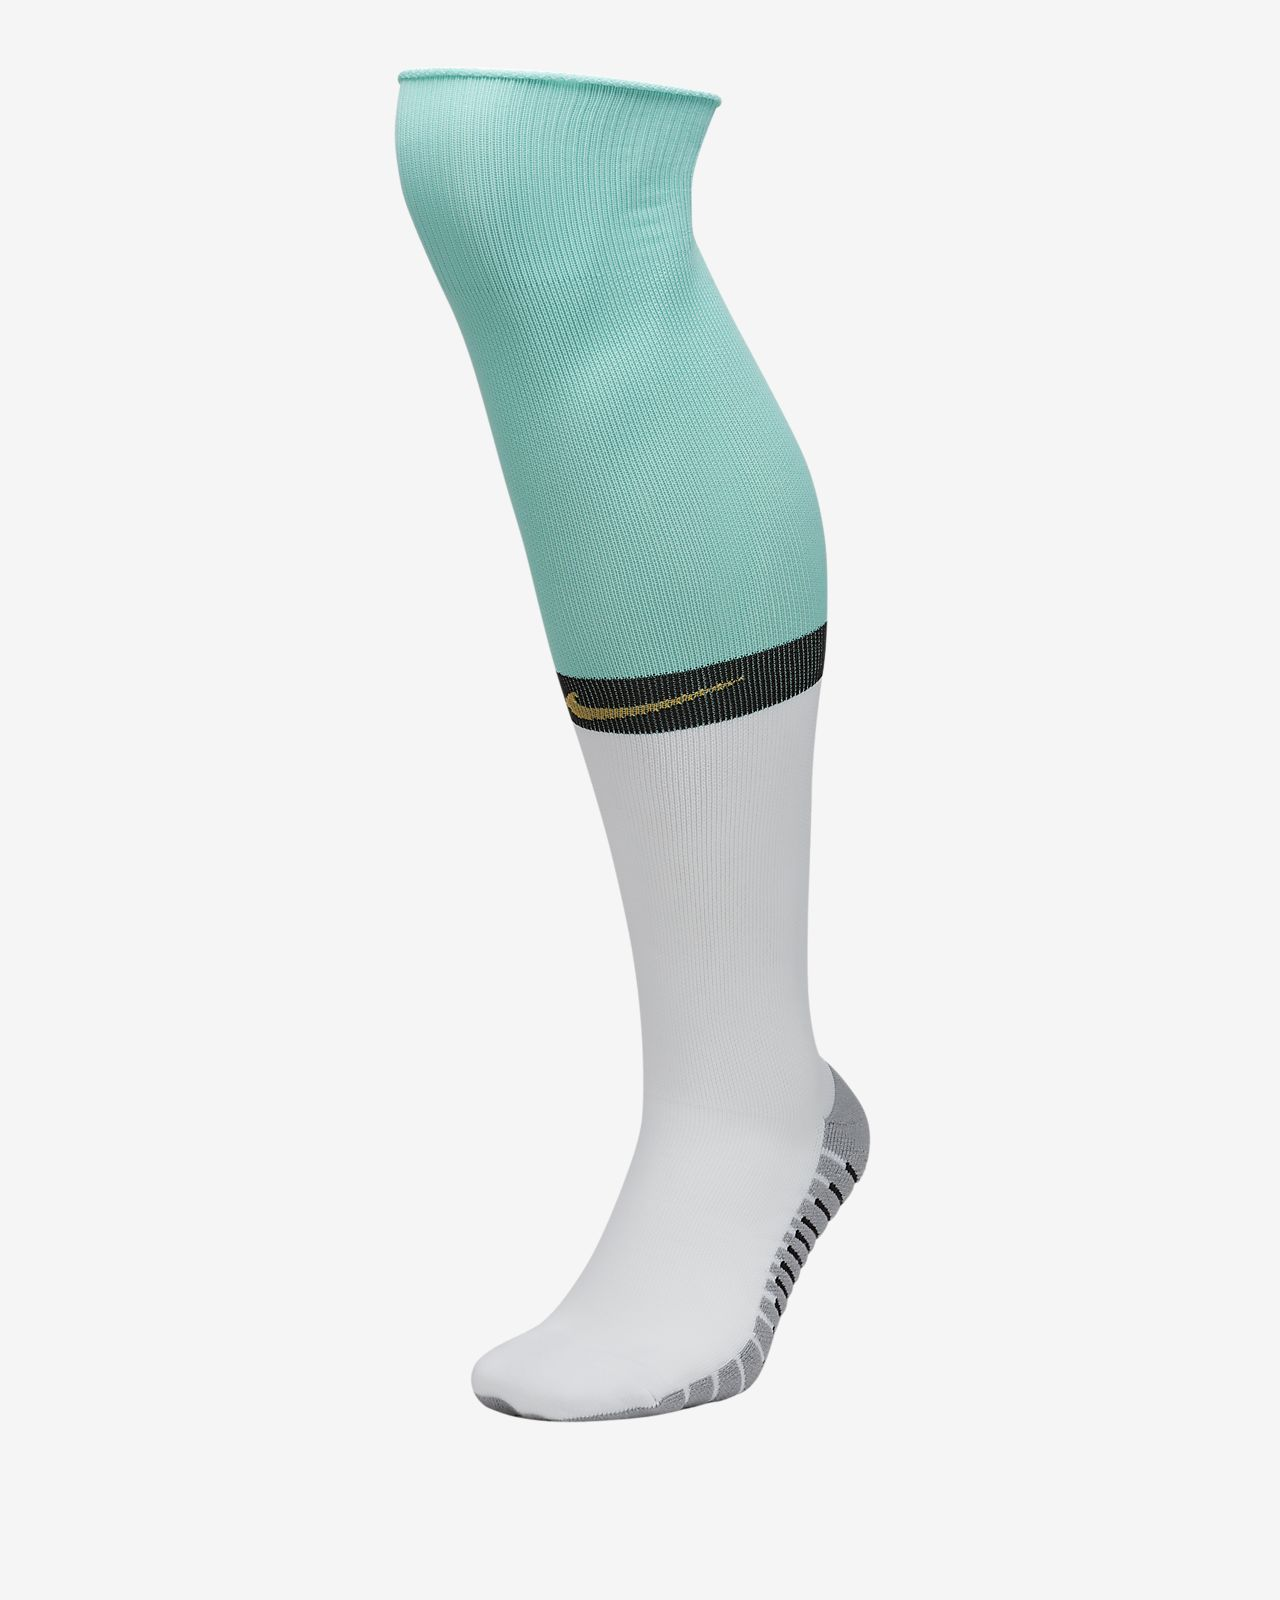 Inter Milan 2019 Stadium Home/Away Over-the-Calf Football Socks